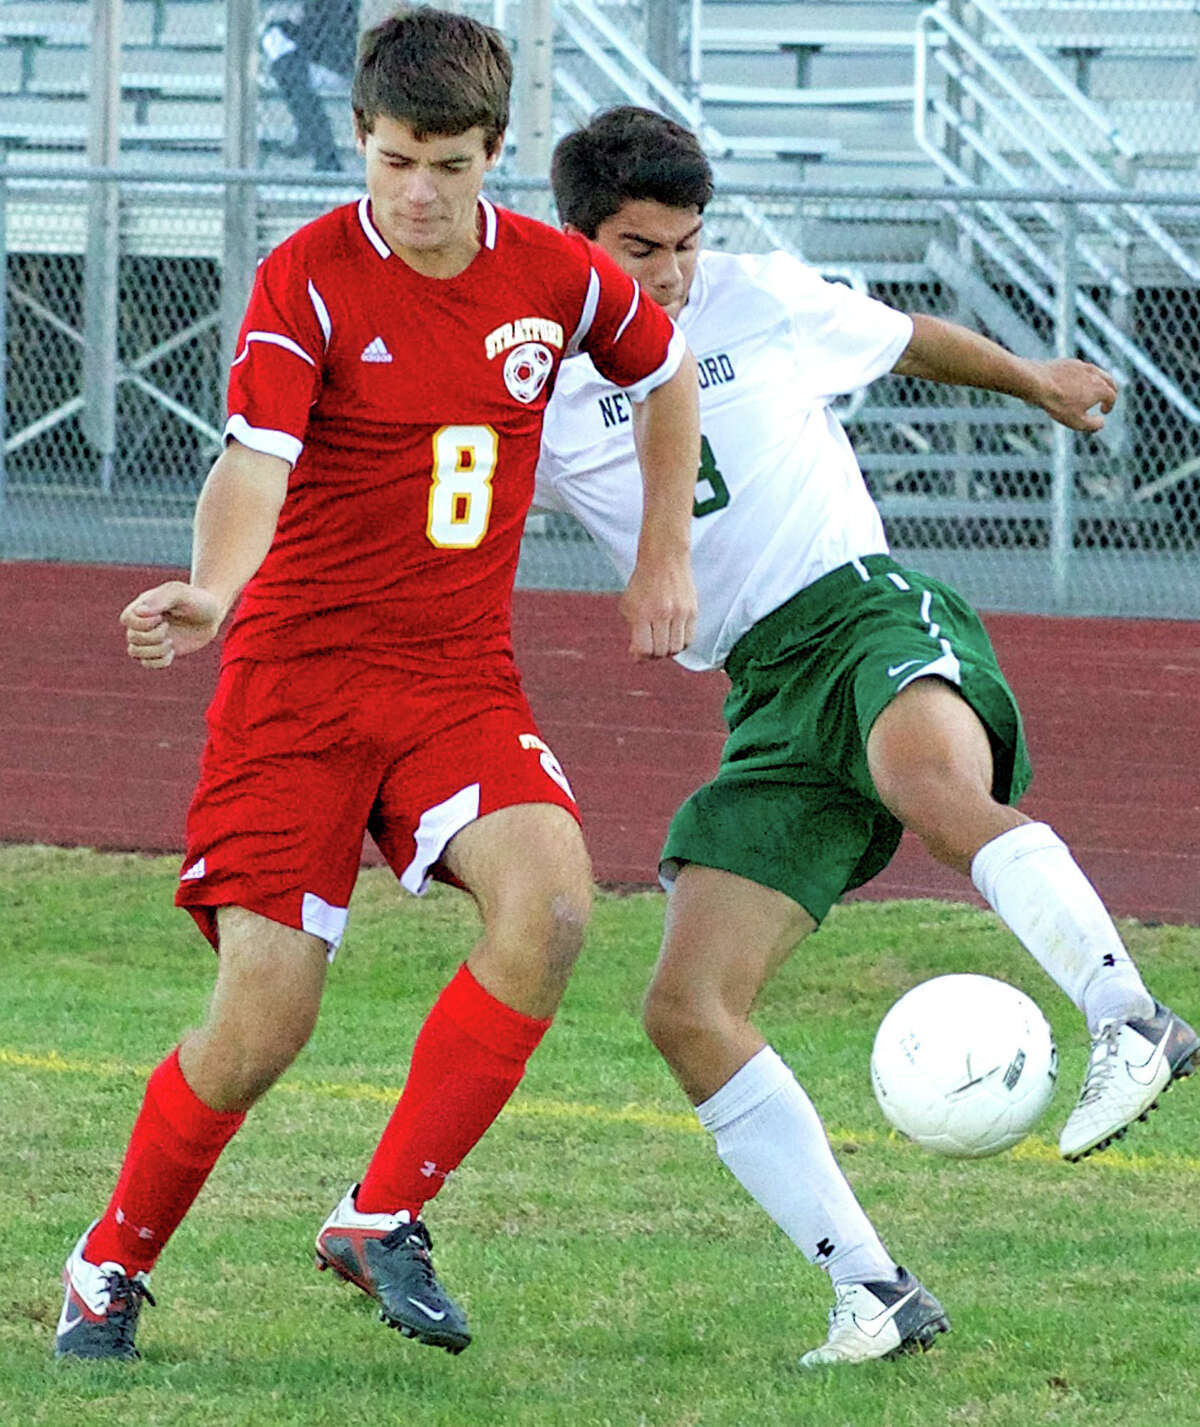 The Green Wave's Nikolas Stefanatos outduels a rival for possession during New Milford High School boys' soccer's 3-1 victory over Stratford, Sept. 23, 2013 at NMHS.